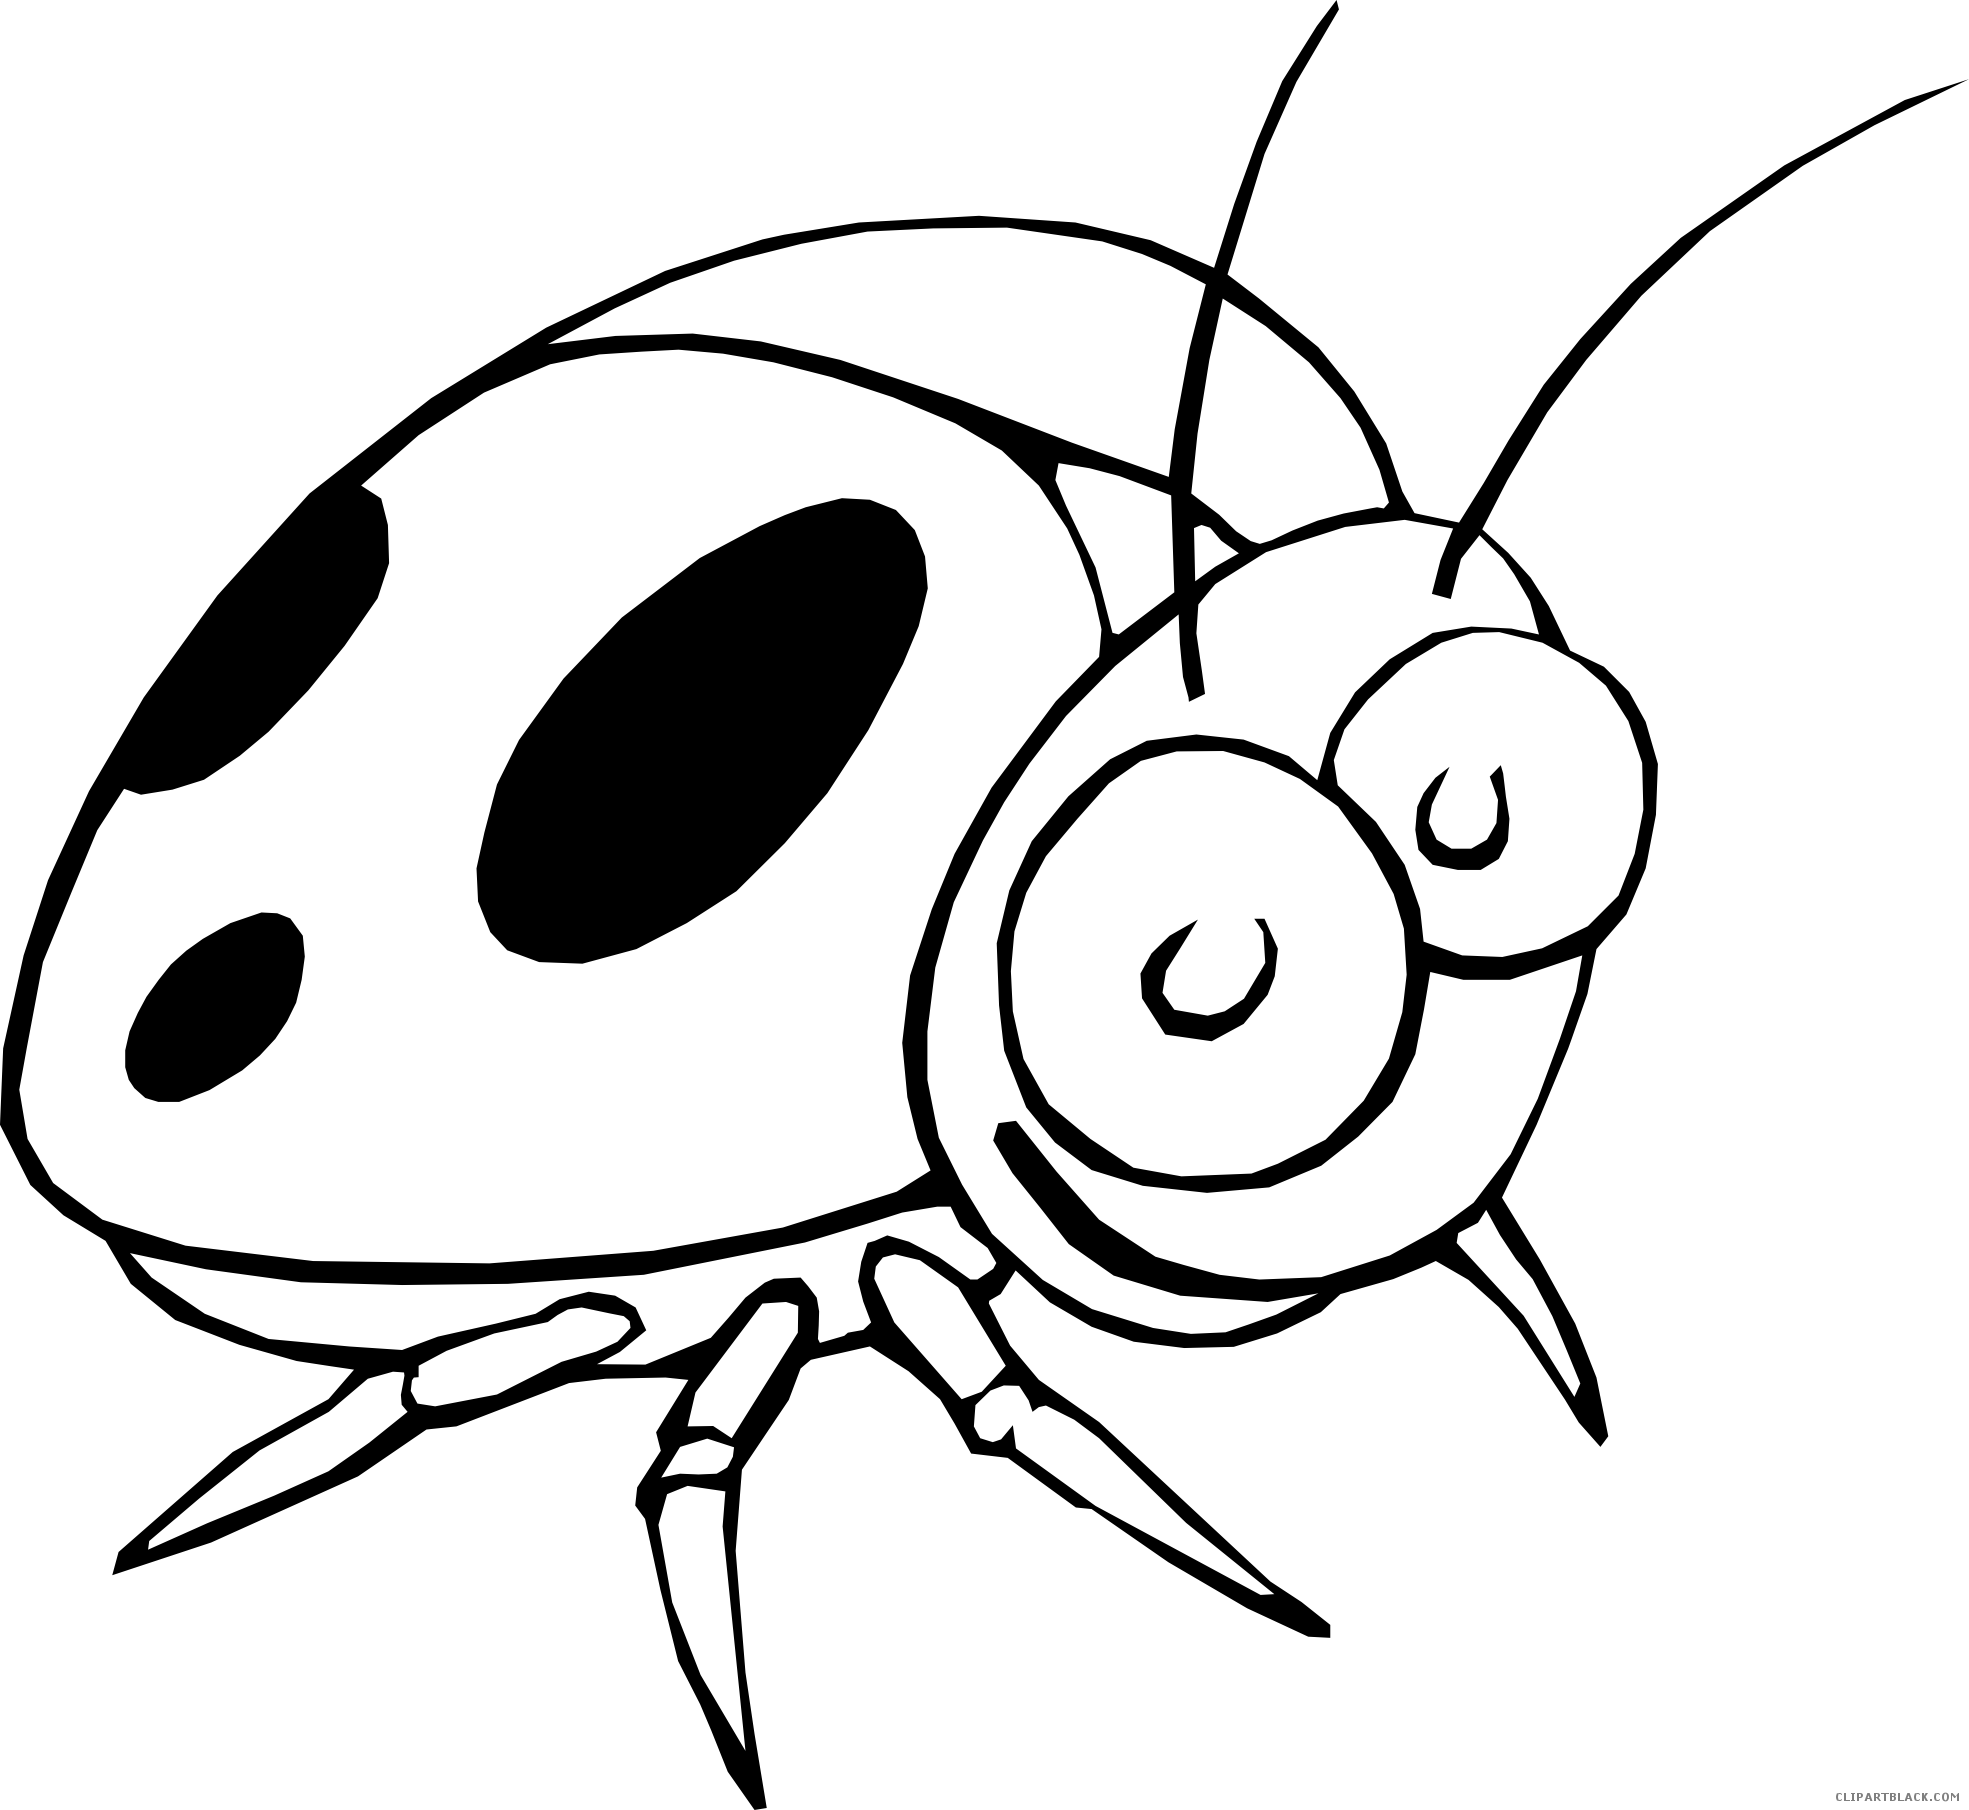 Ladybugs clipart outline. Ladybug clipartblack com animal